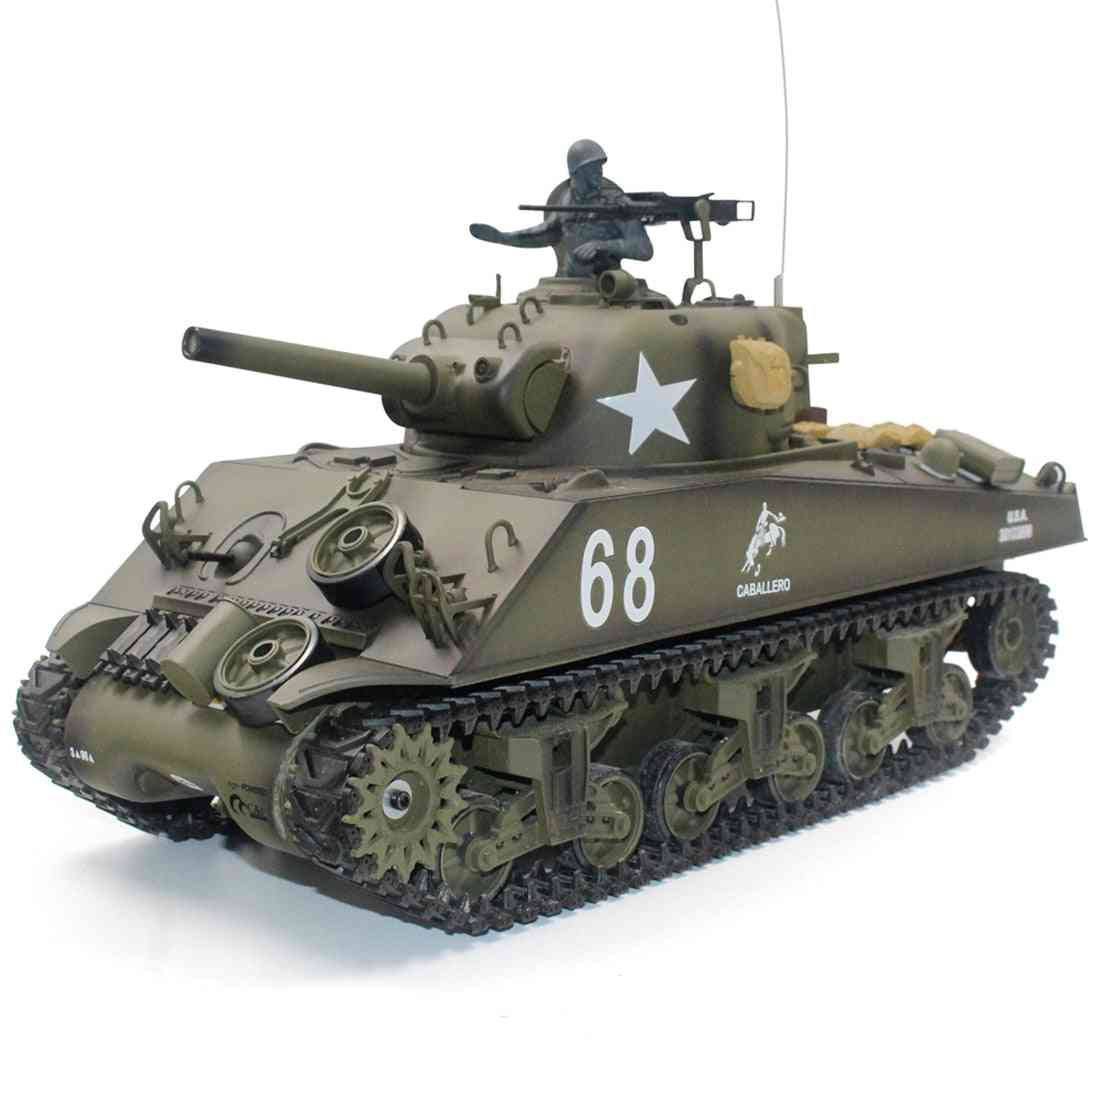 Simulation Rc Tank Model For, Educational Toy